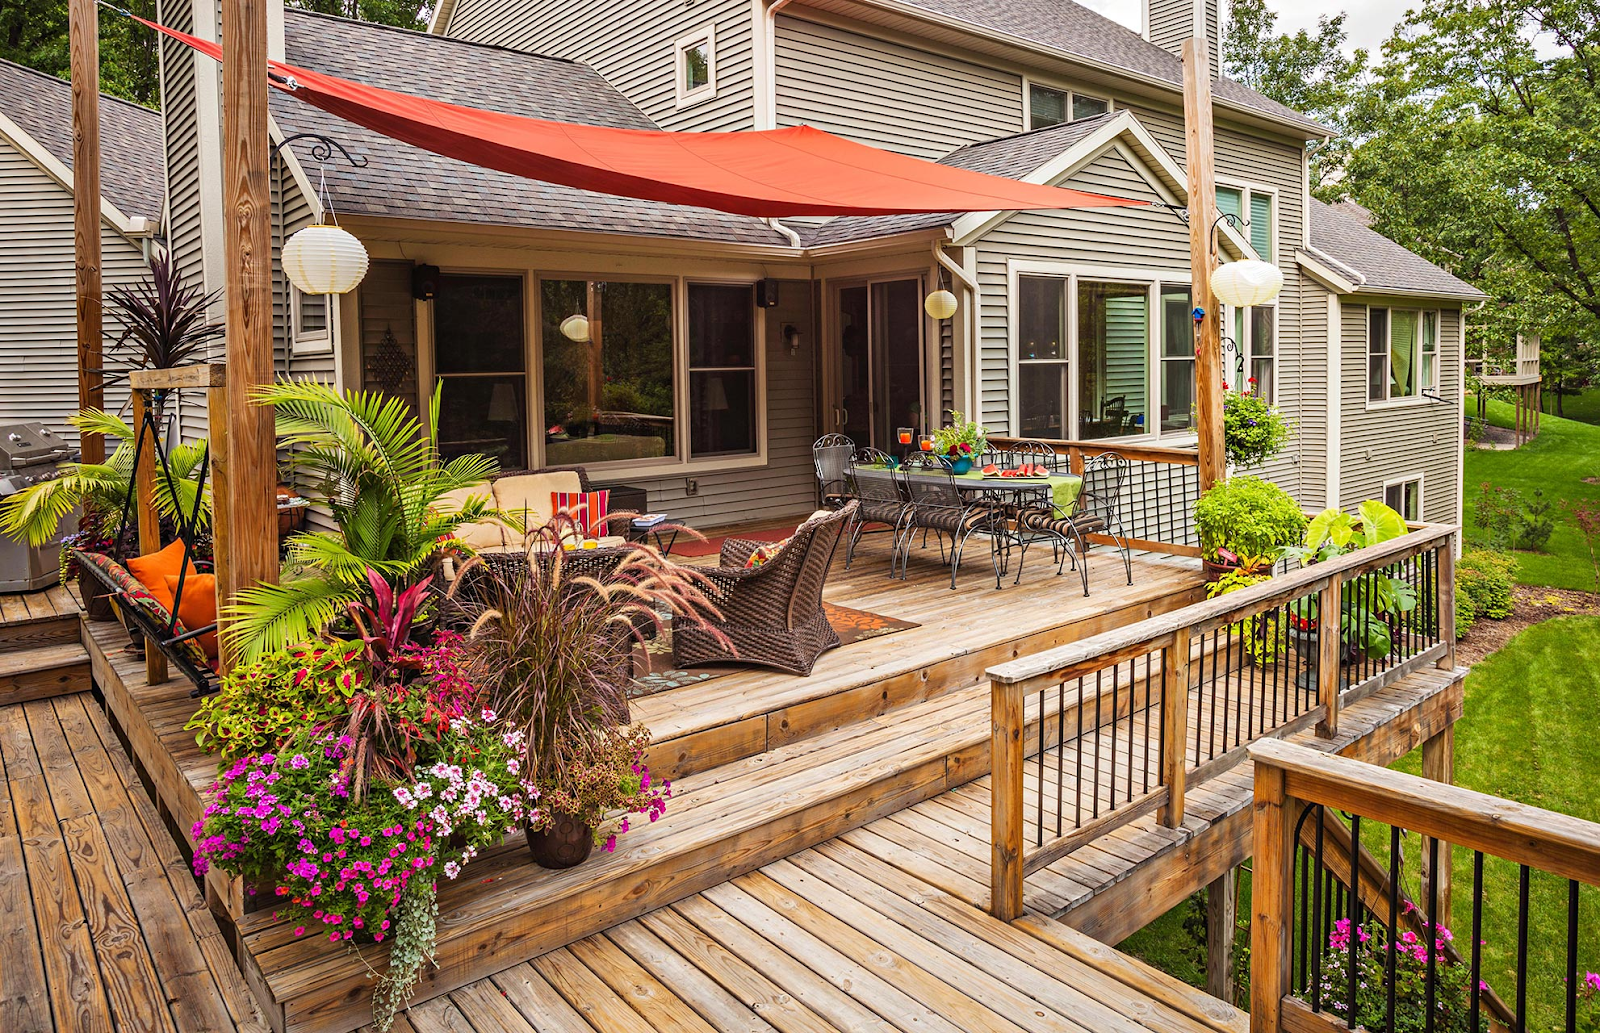 The Best Deck Renovation Ideas for Your Exterior Home Improvement